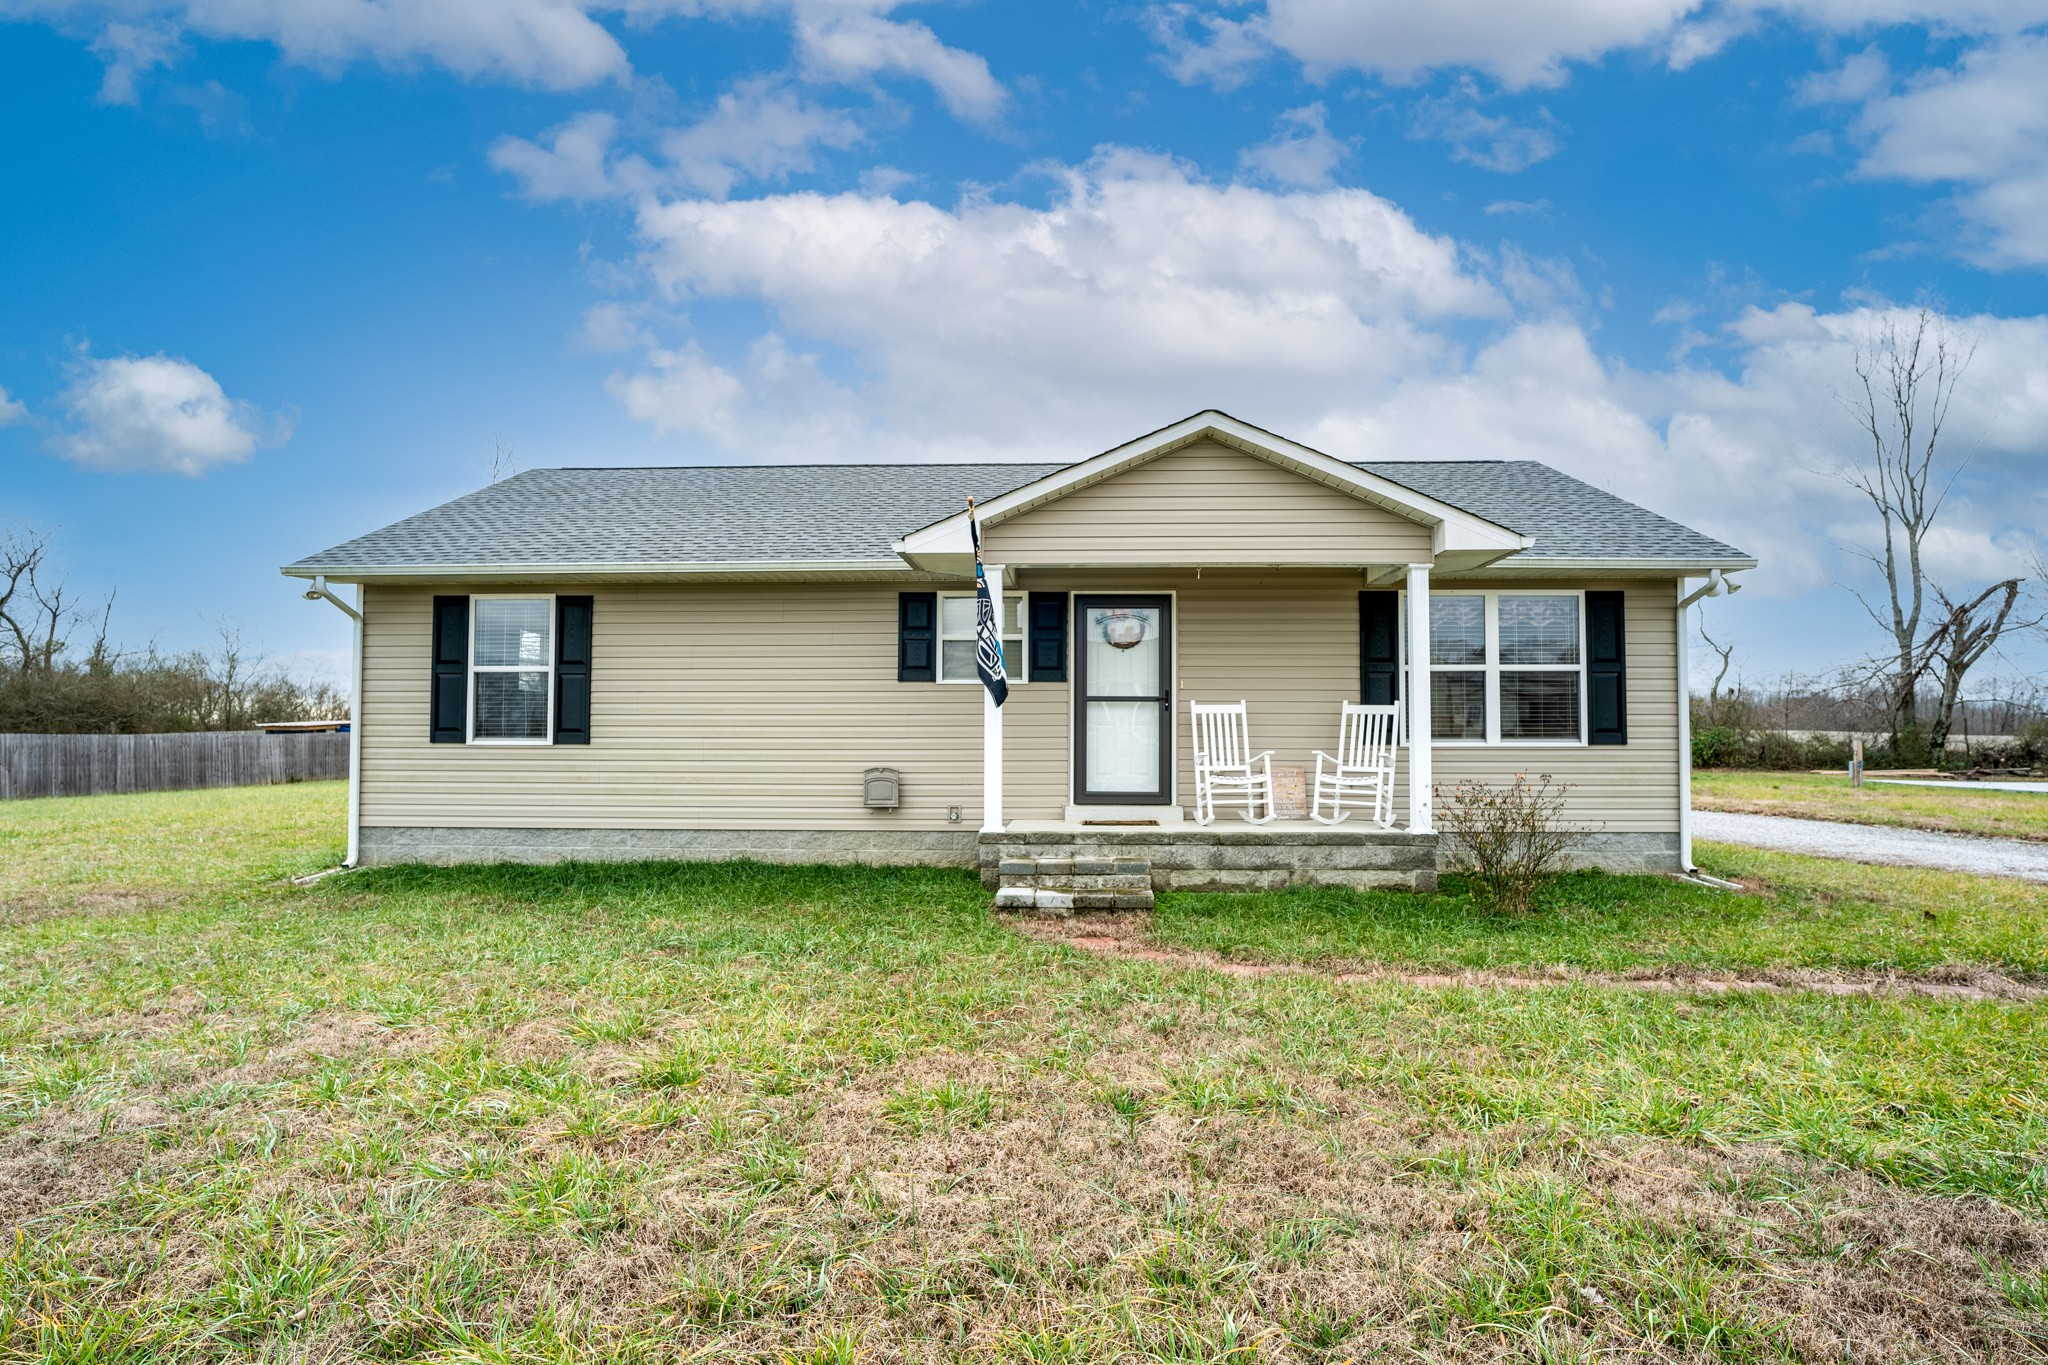 167 Michael Dr Property Photo - Leoma, TN real estate listing